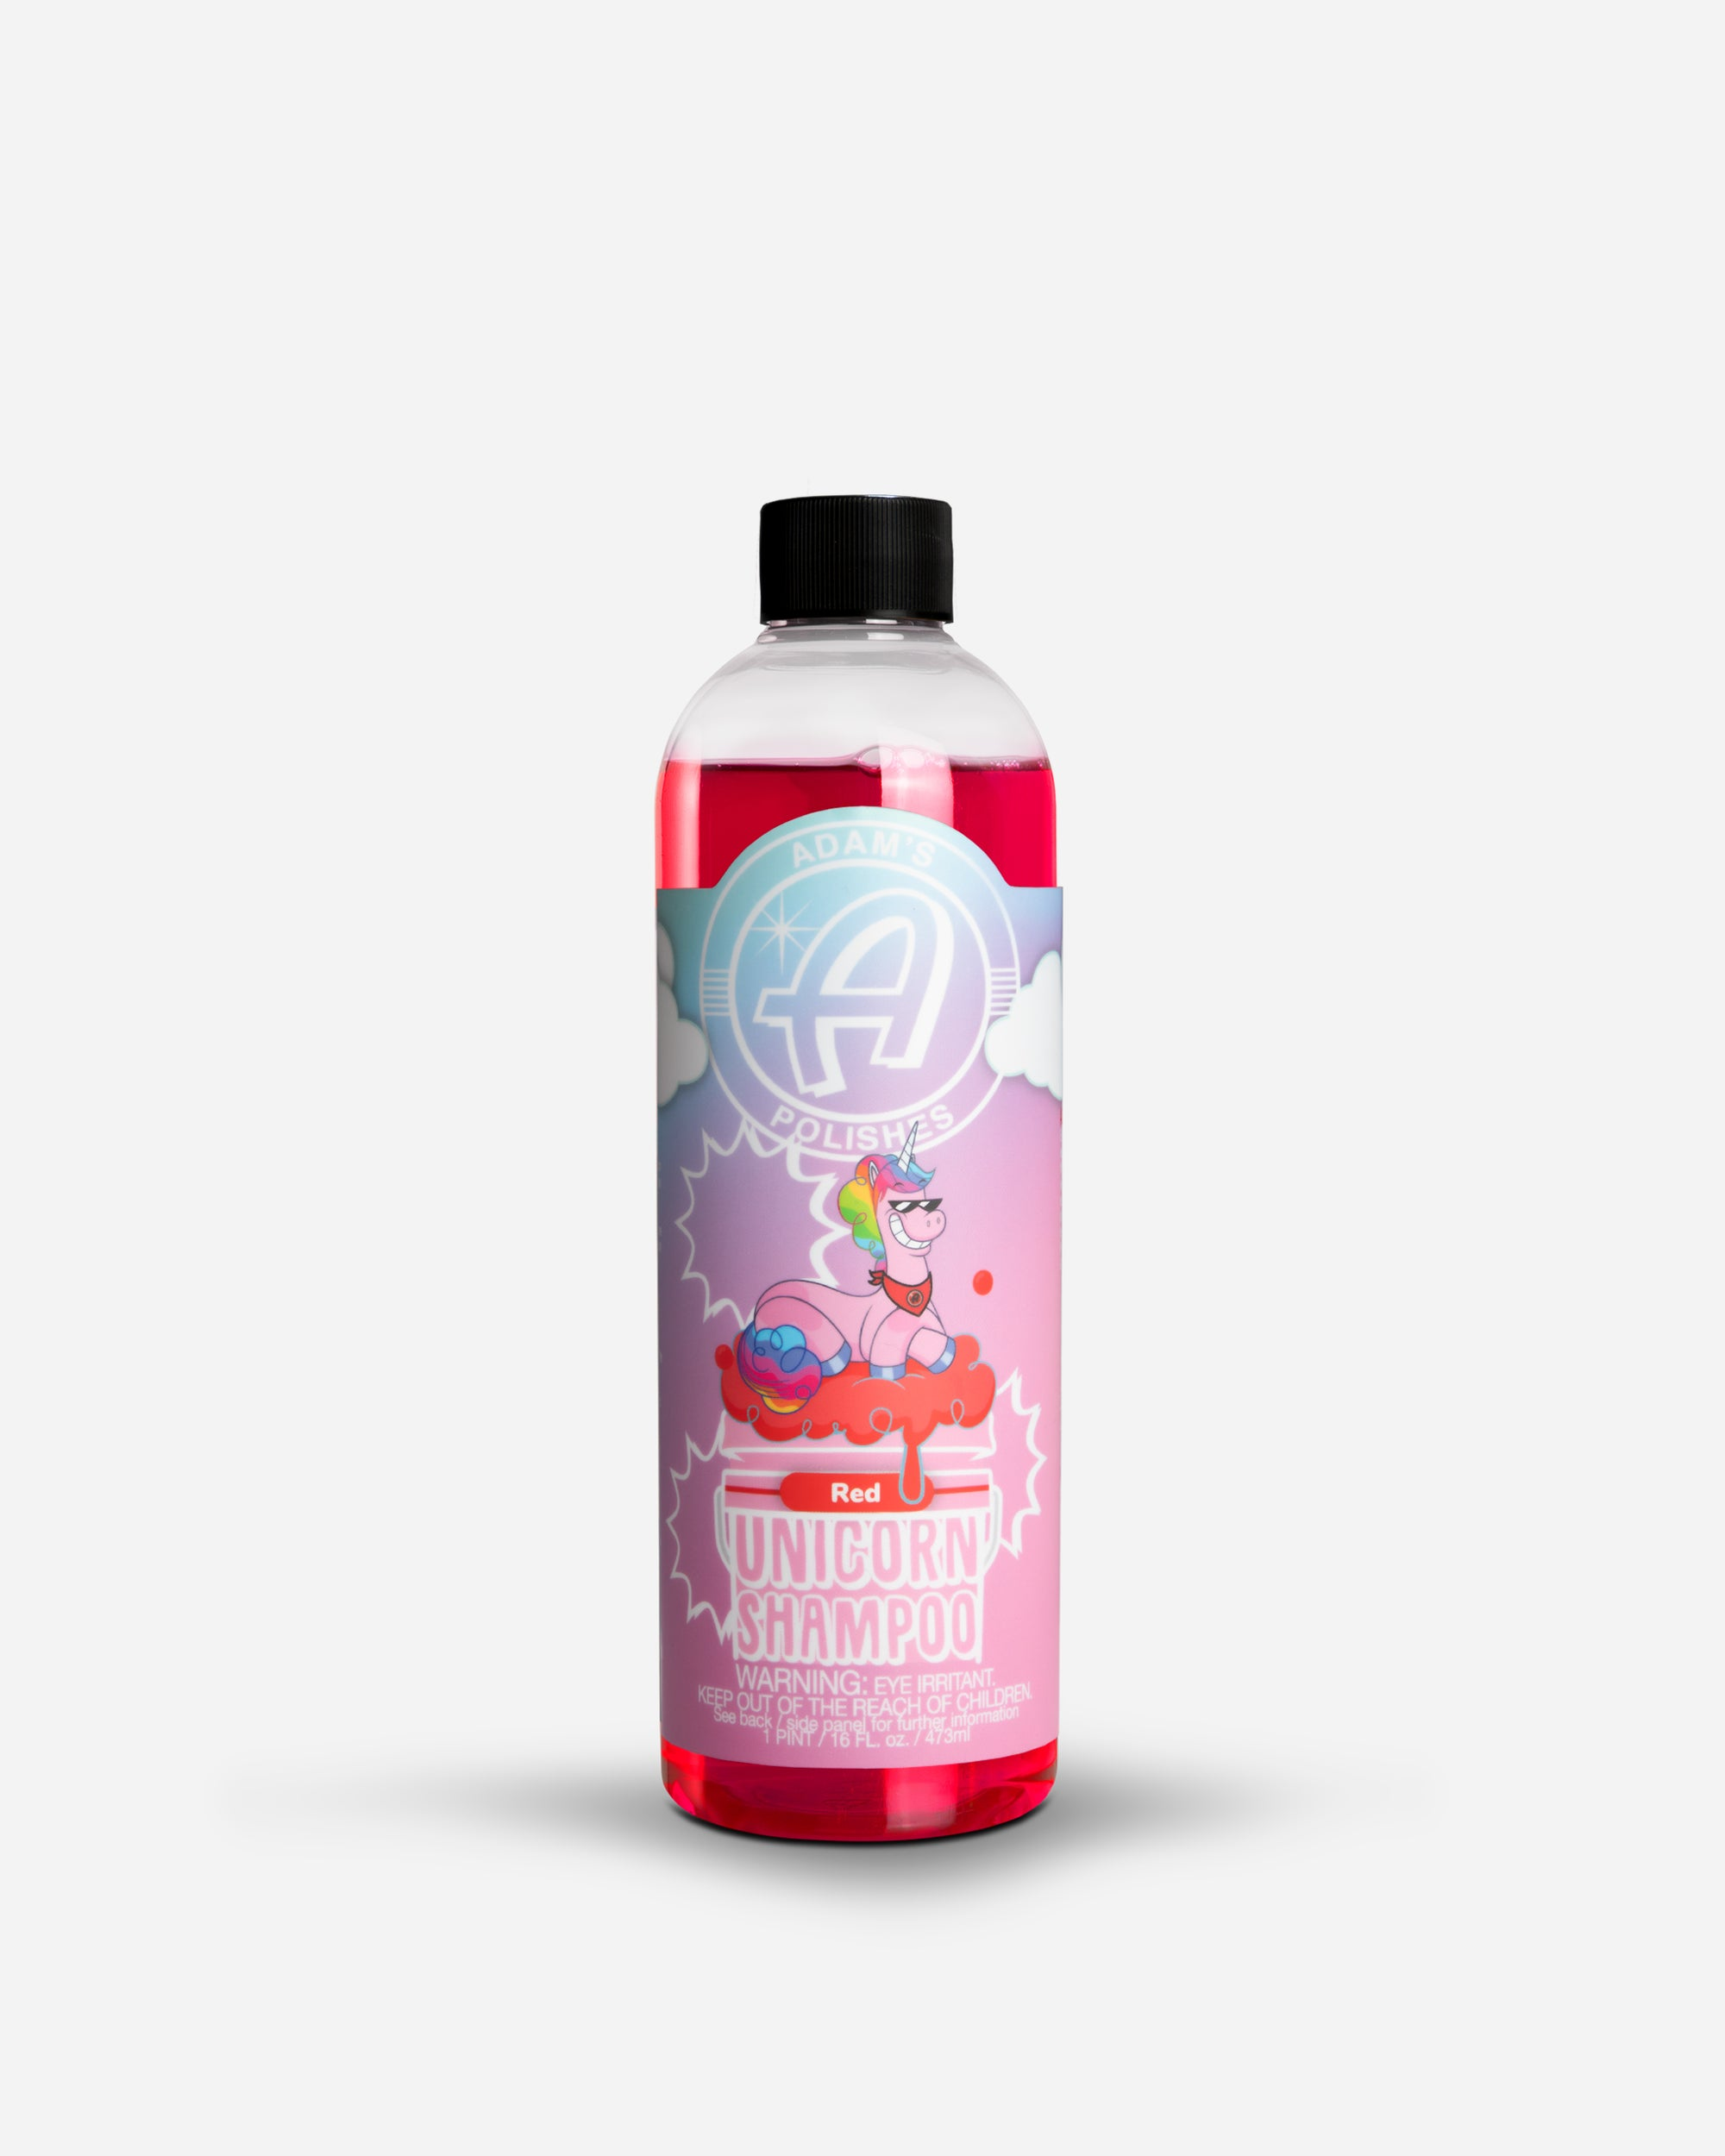 Adam's Red Unicorn Shampoo